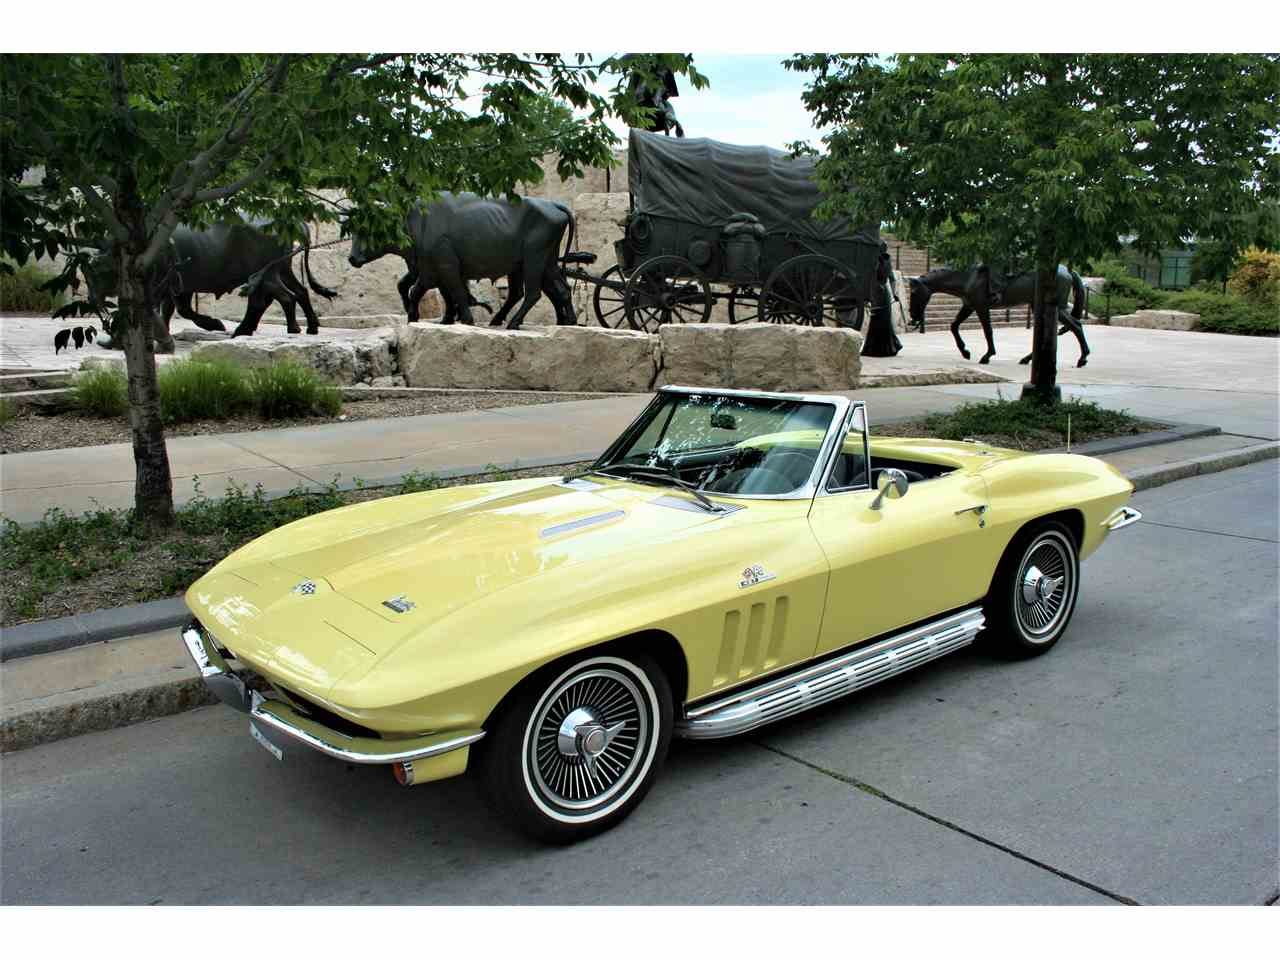 https://ccpublic.blob.core.windows.net/cc-temp/listing/98/6337/9188202-1966-chevrolet-corvette-std-c.jpg